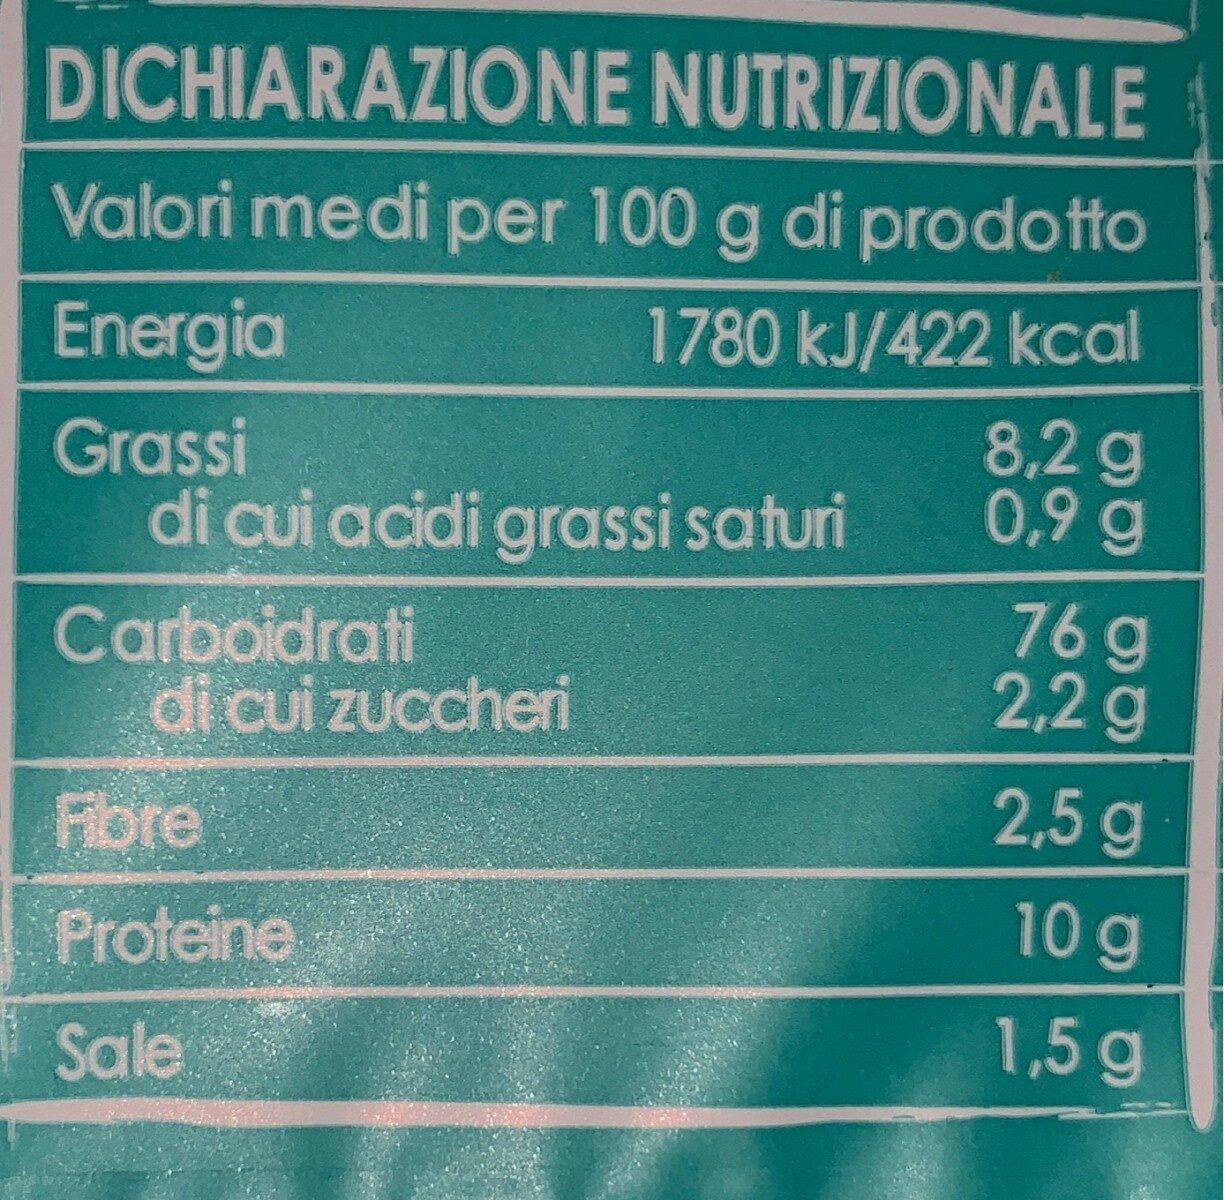 Crackers con riso soffiato - Informations nutritionnelles - fr